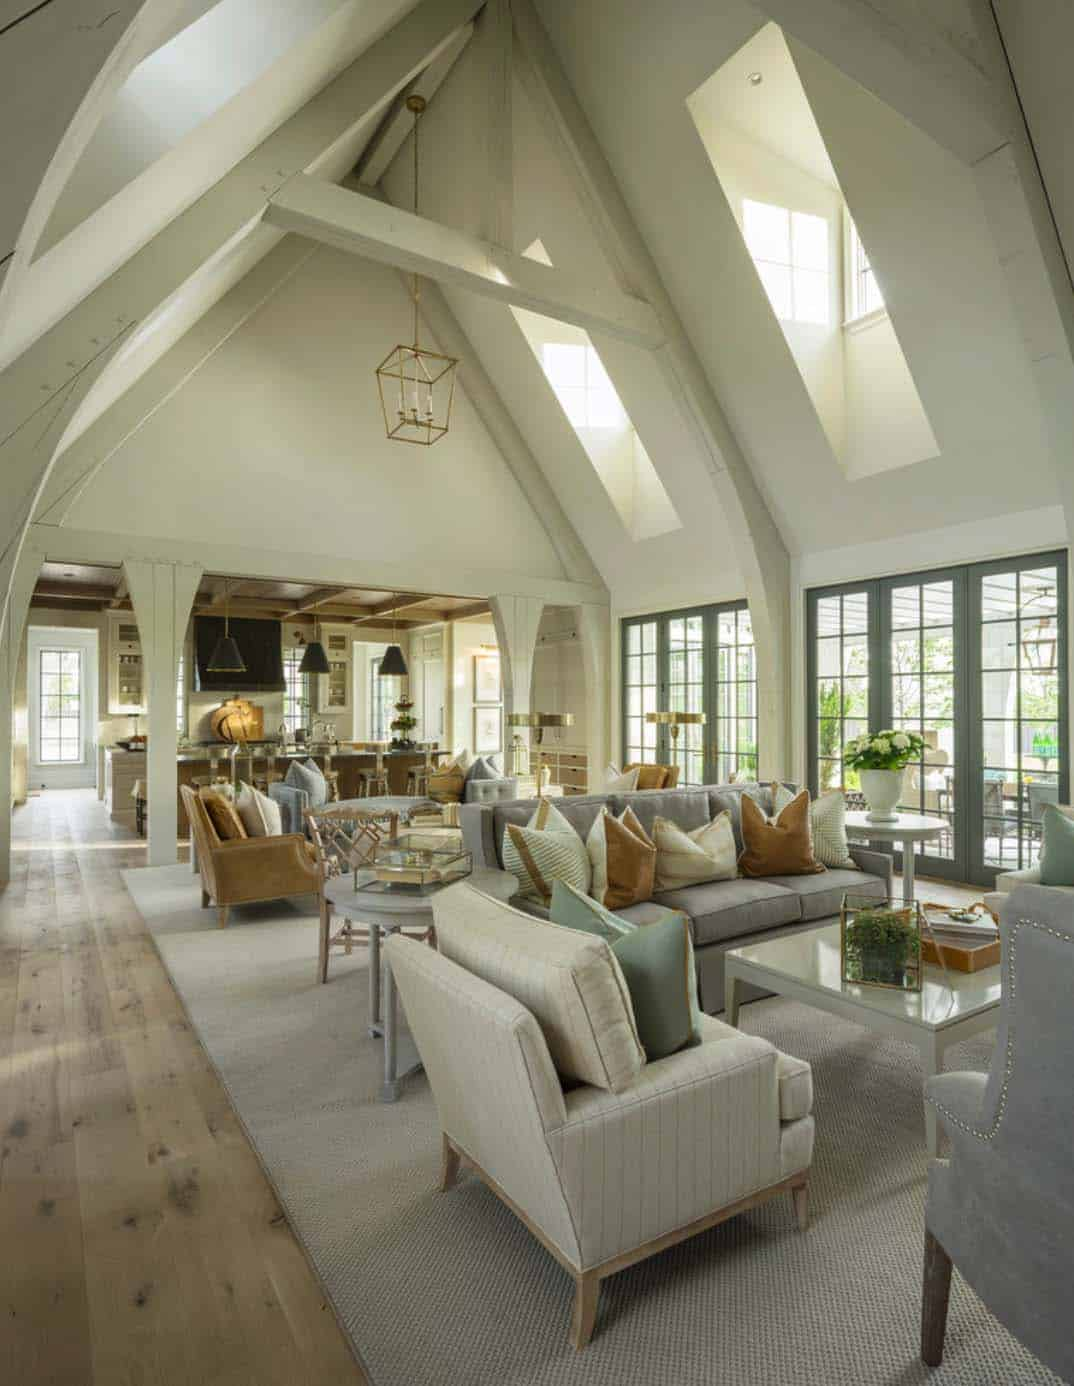 timeless-dream-home-jackson-leroy-004-1-kindesign